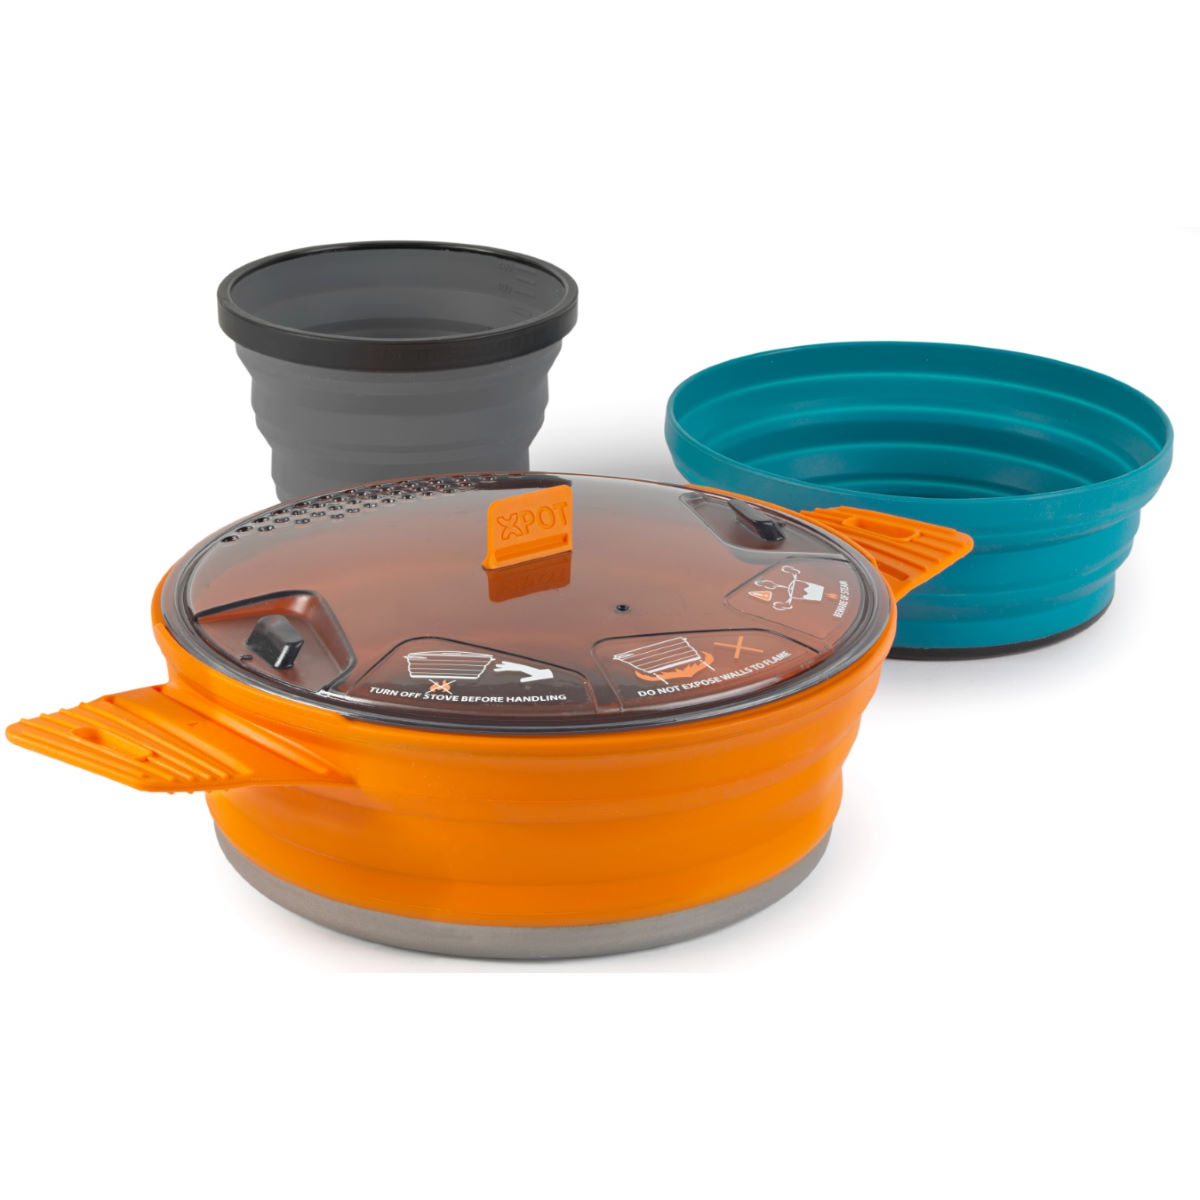 Lot Sea To Summit X-Set: 21 (3 pièces : 1 plat de cuisson X-Pot d'1,4 litre, 1 bol X, 1 tasse X)